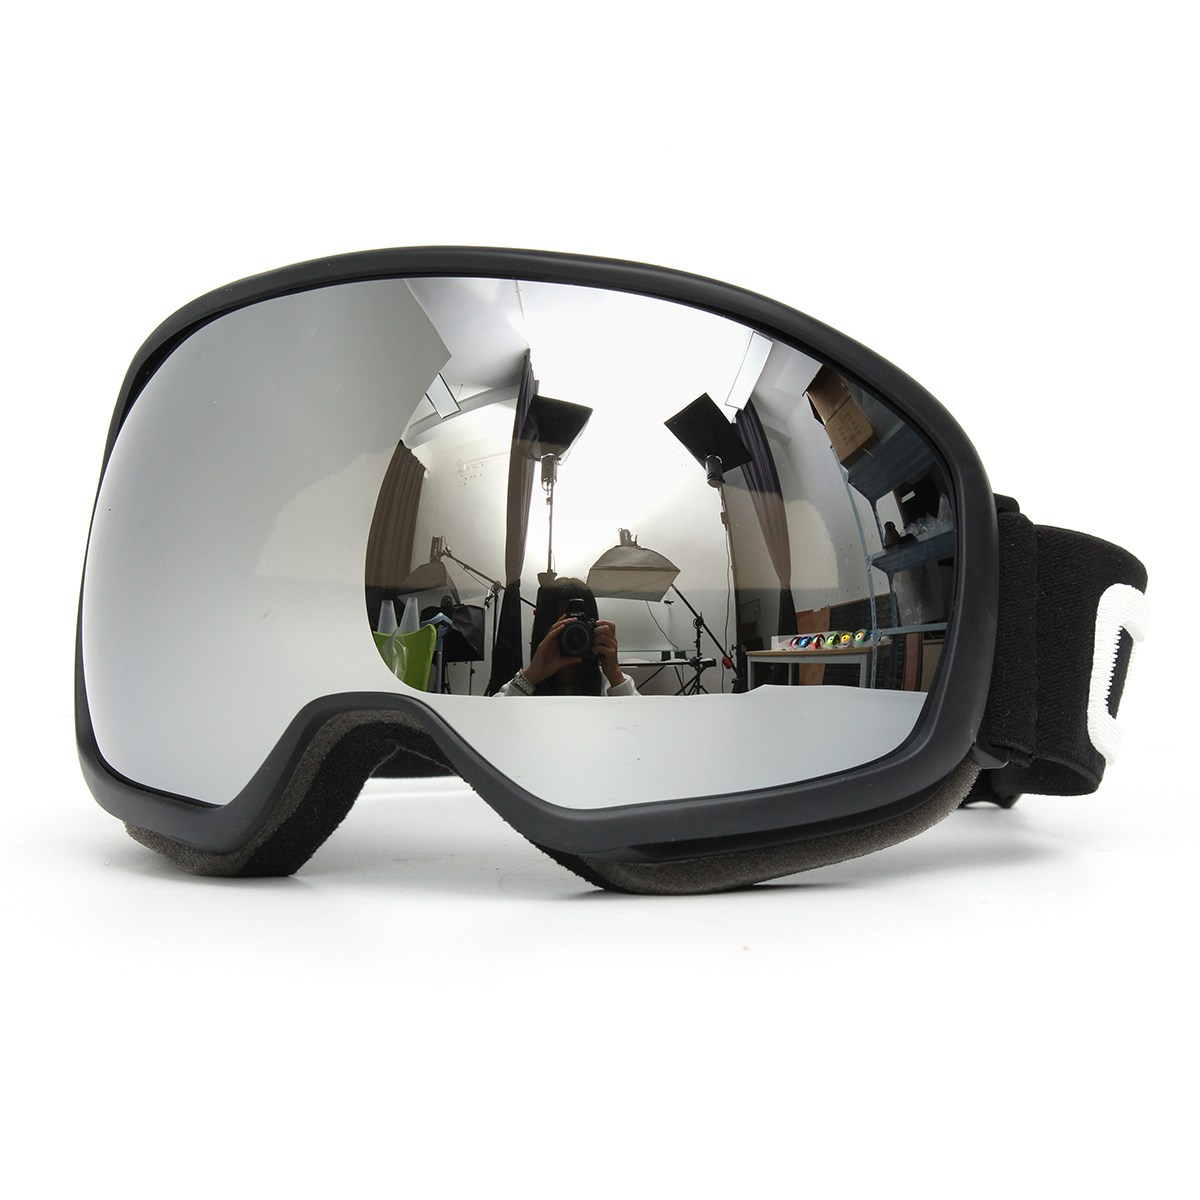 Skiing Eyeglasses Pro Skiing Goggles Double Lens Anti Fog UV Snowboard Snowmobile Snow Sport Black